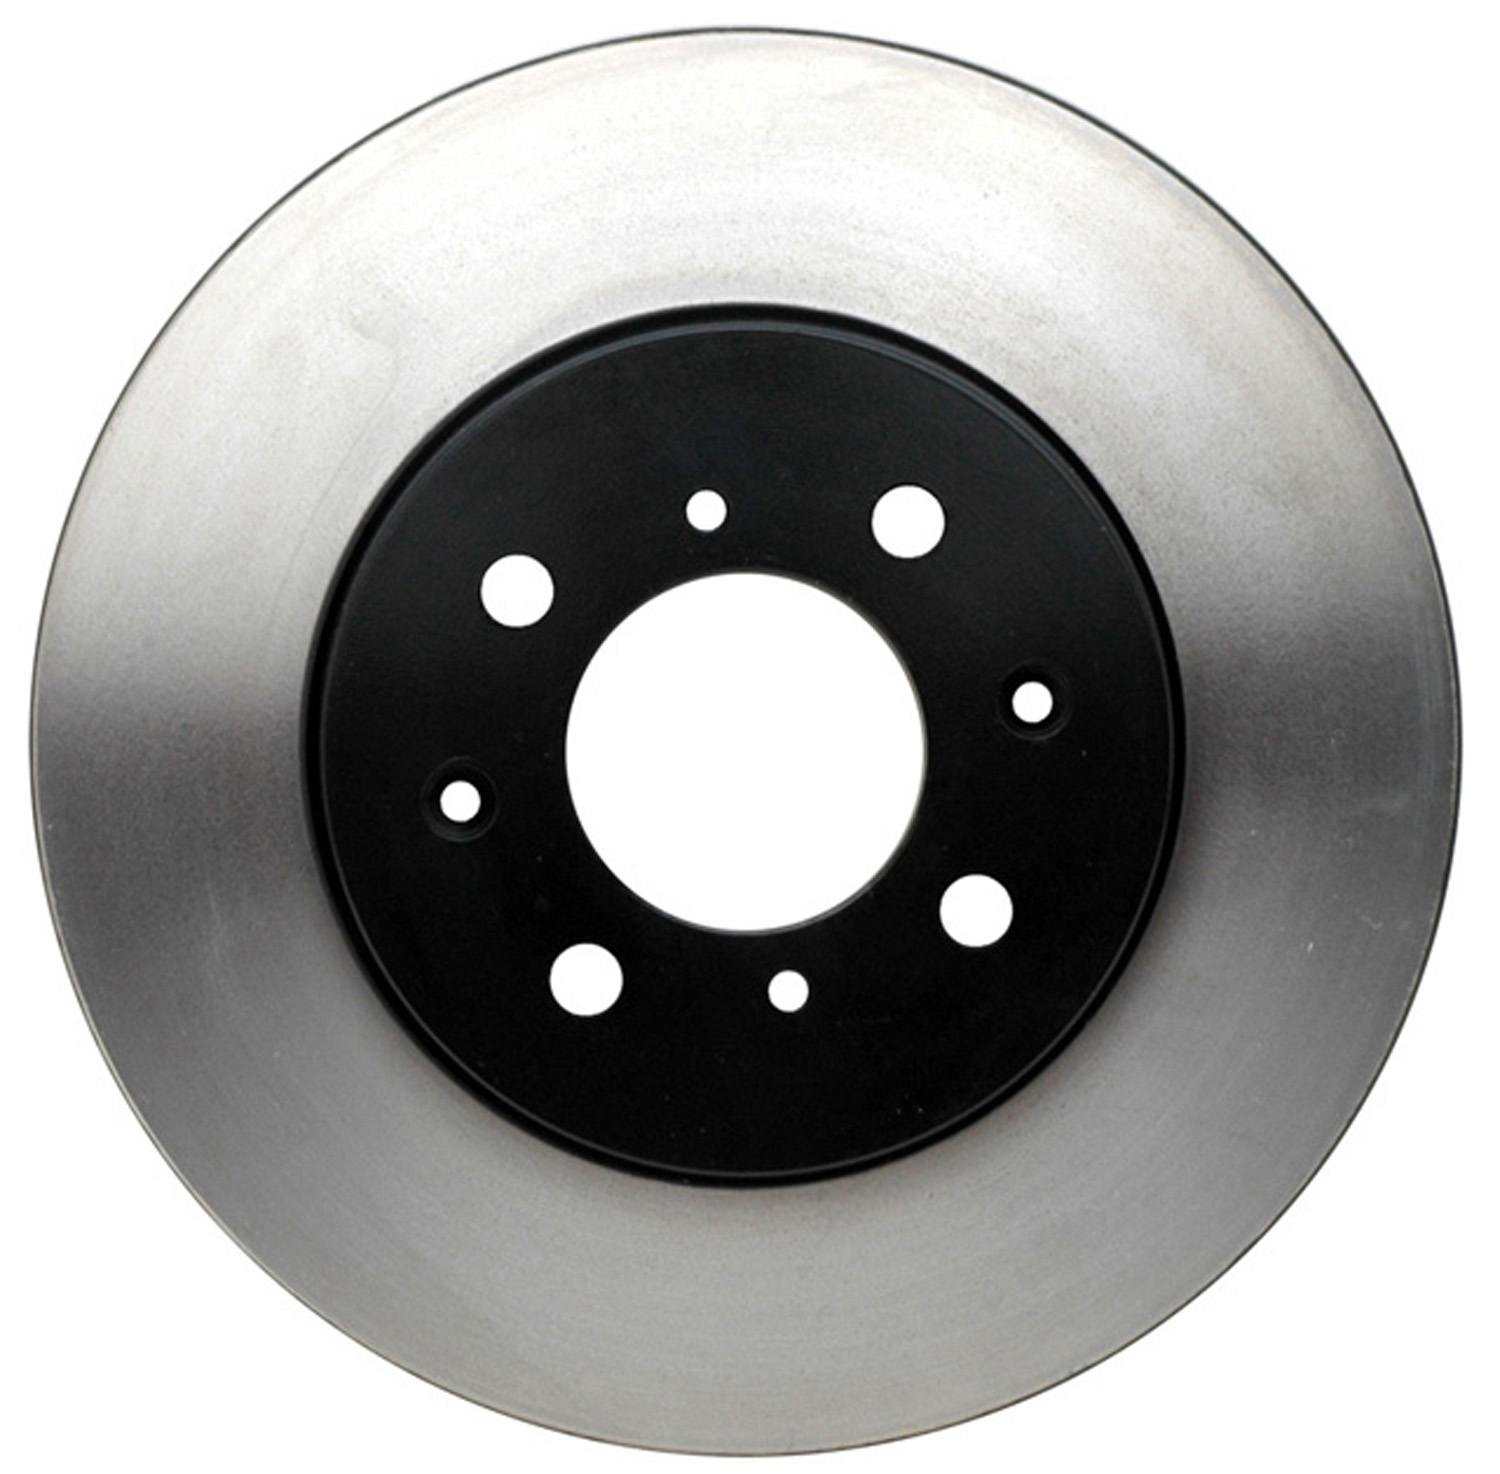 ACDELCO PROFESSIONAL BRAKES - Disc Brake Rotor (Front) - ADU 18A367